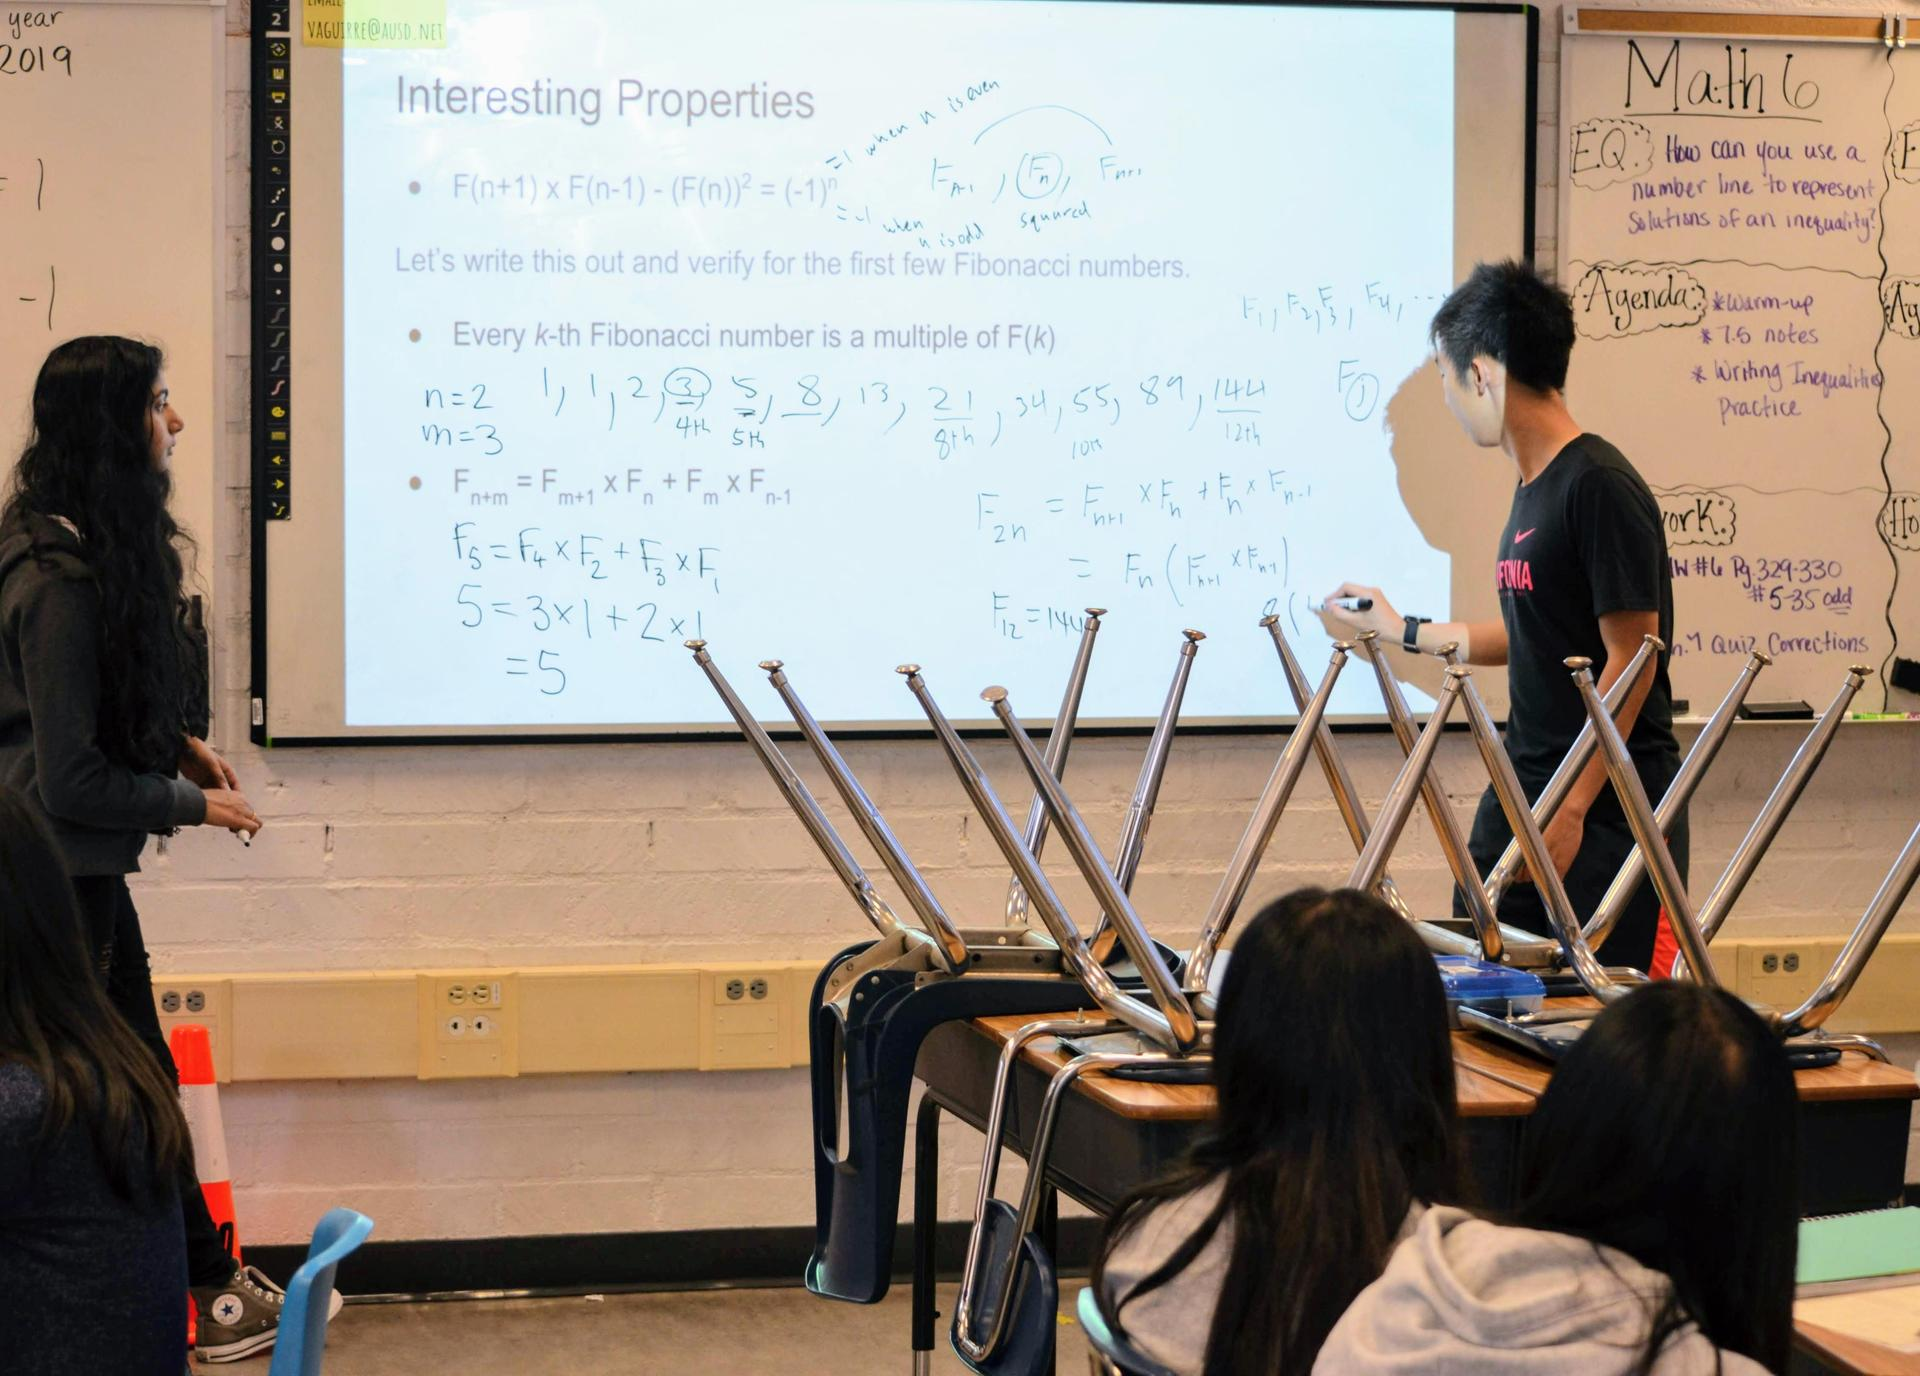 Prabhutendolkar working alongside Arcadia Math Circle teacher/Arcadia High sophomore Merrick Hua.